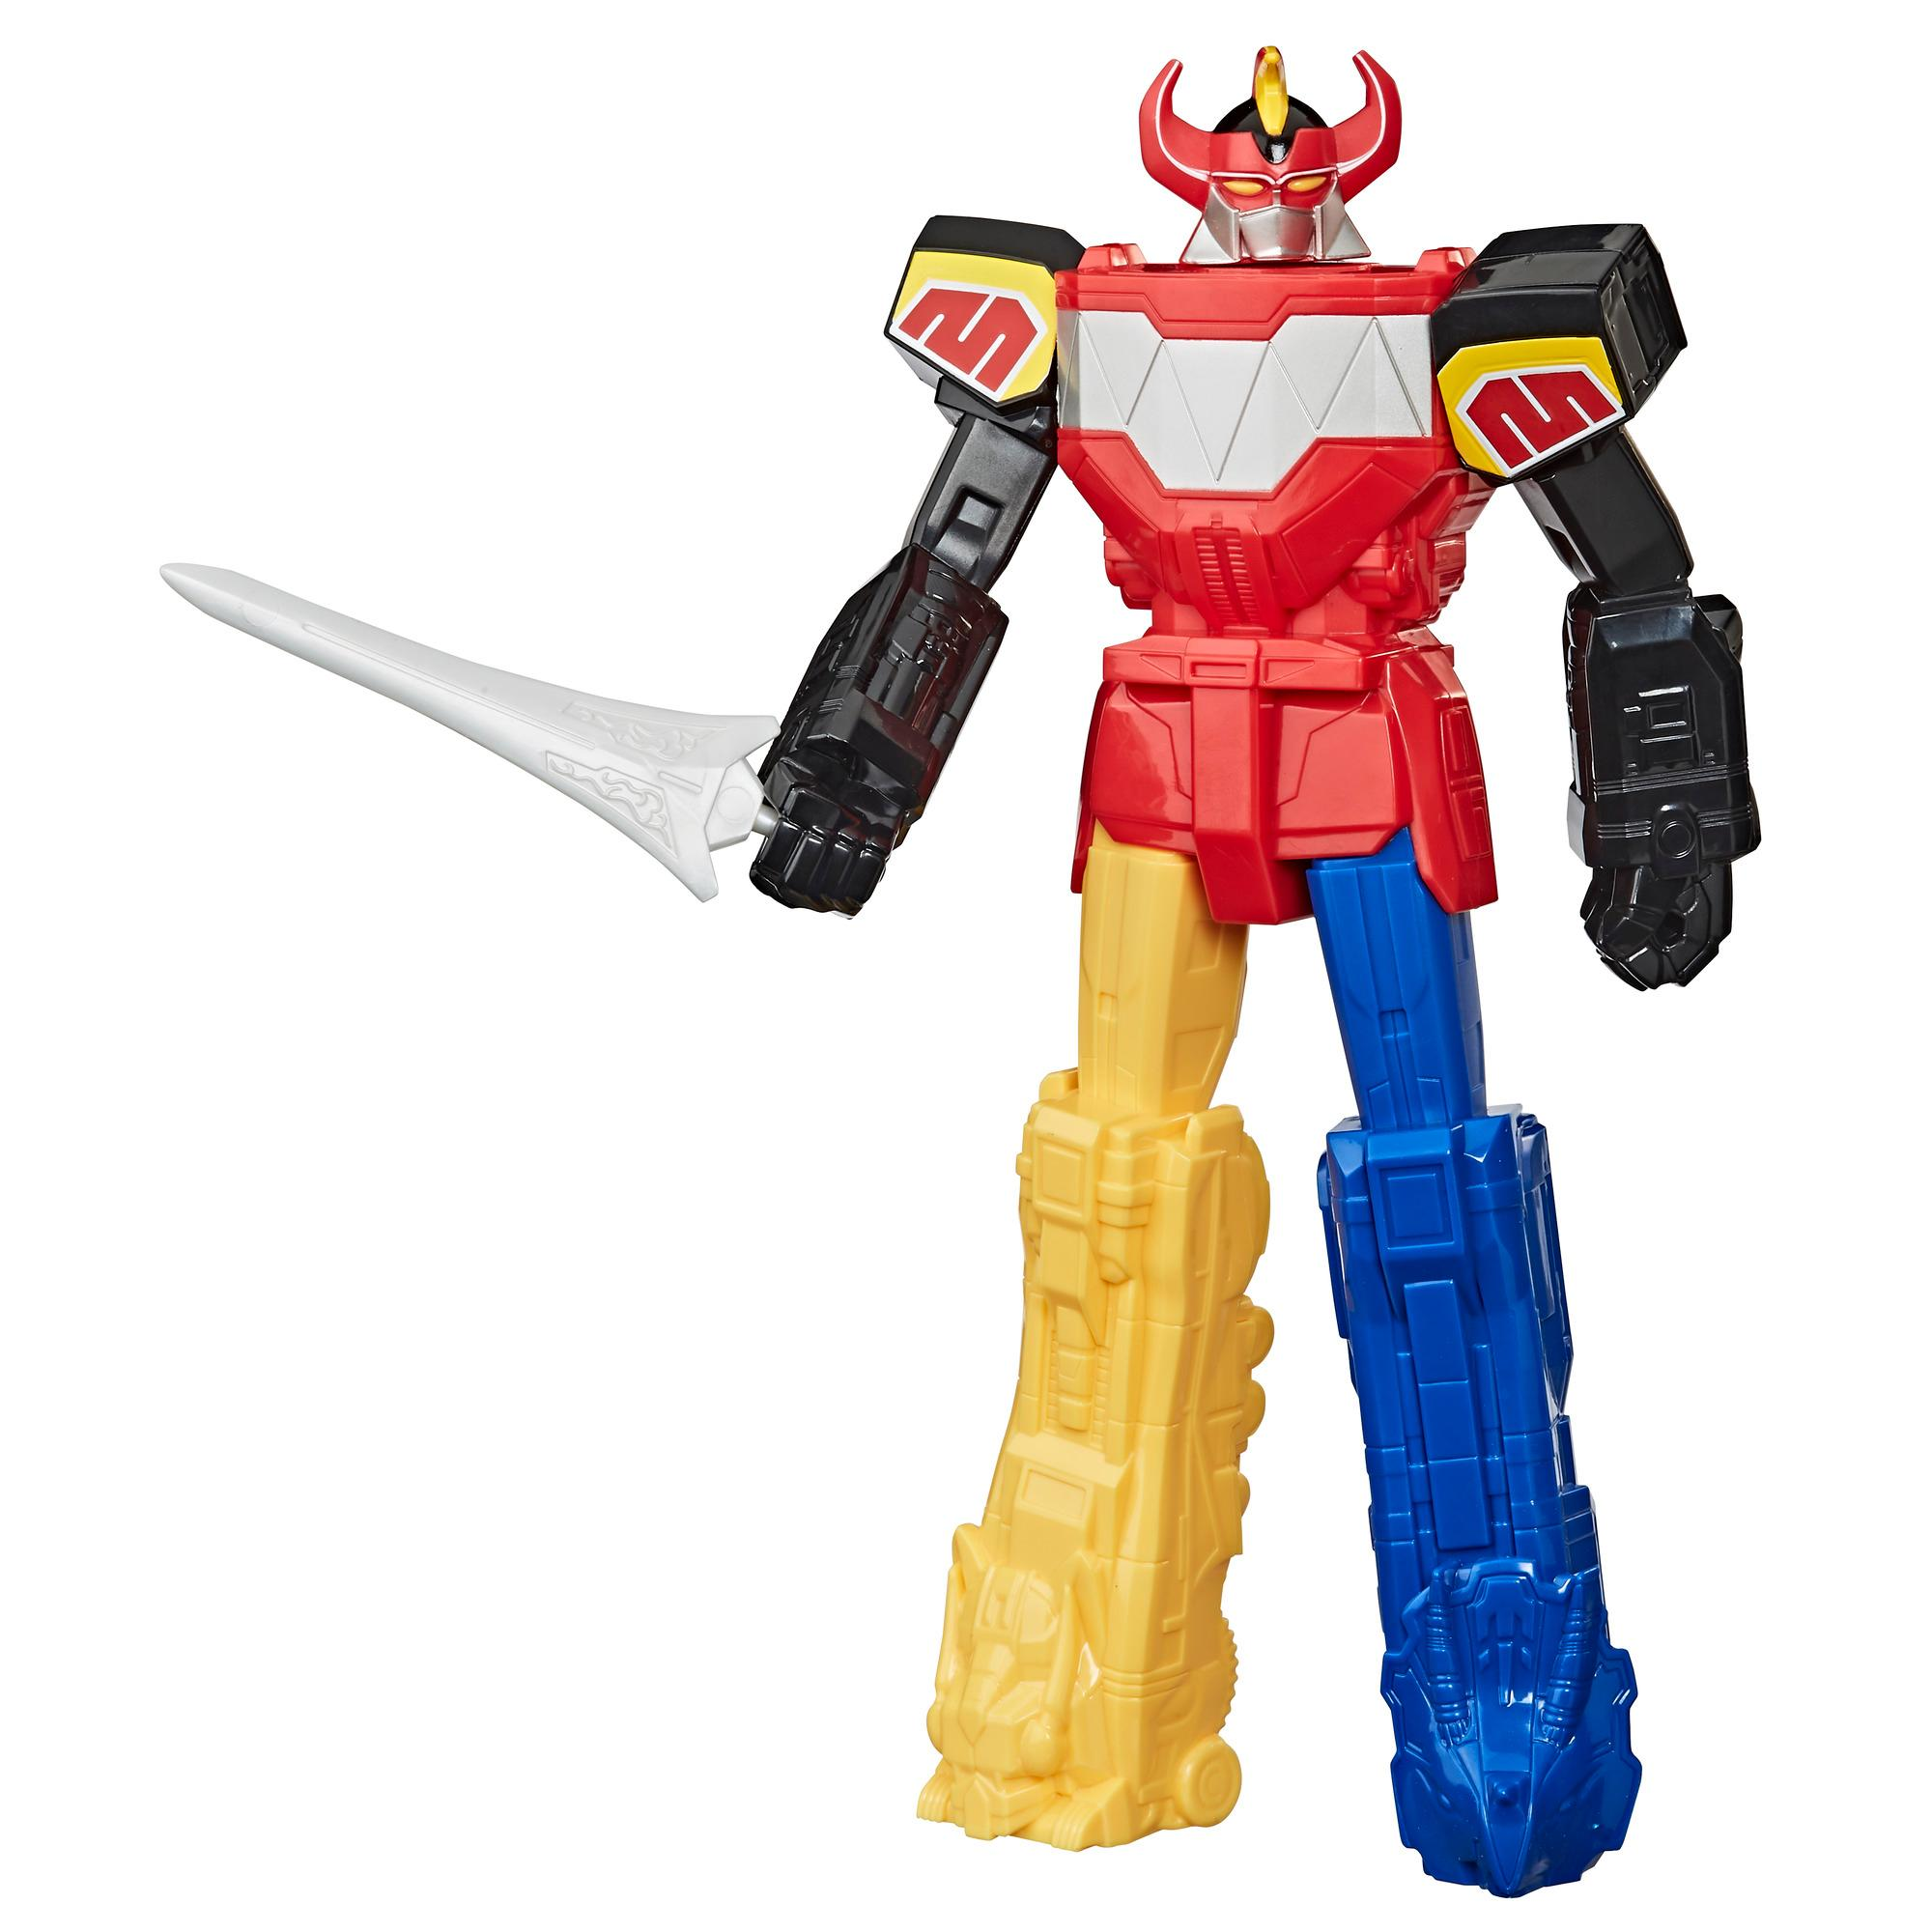 Power Rangers Mighty Morphin Megazord 10-inch Action Figure Toy With Sword Accessory Inspired by Power Rangers TV Show